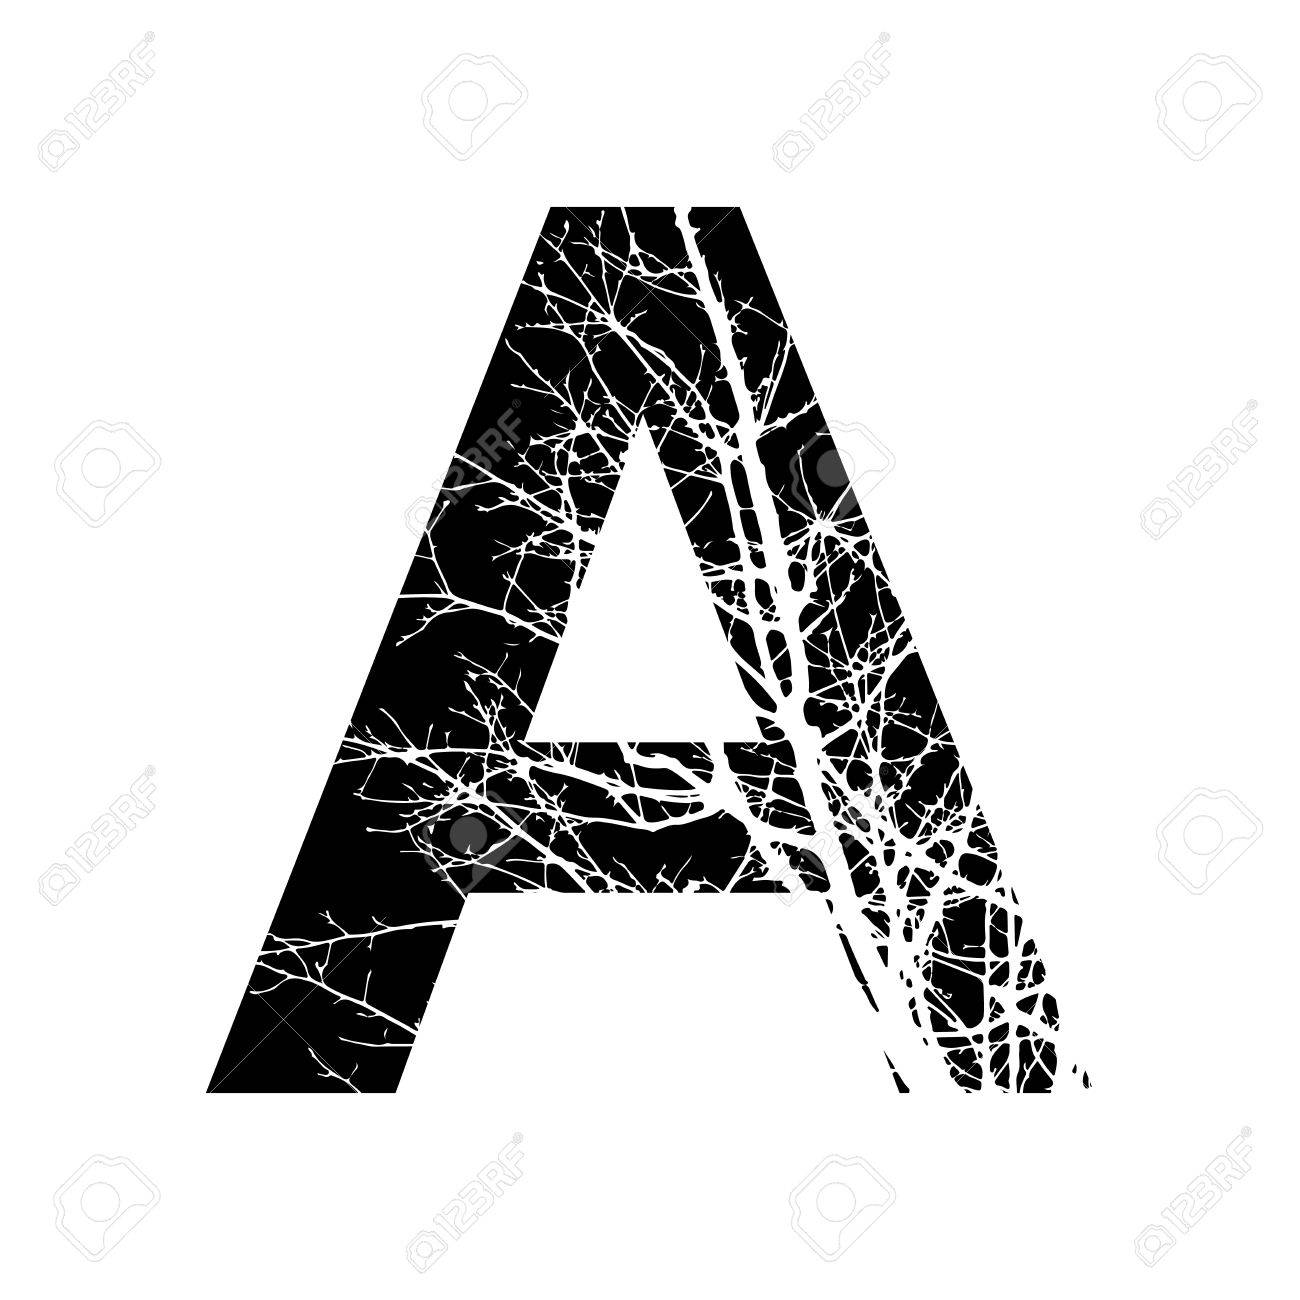 Letter A Double Exposure With White Tree On Black Background Vector Royalty Free Cliparts Vectors And Stock Illustration Image 51073519